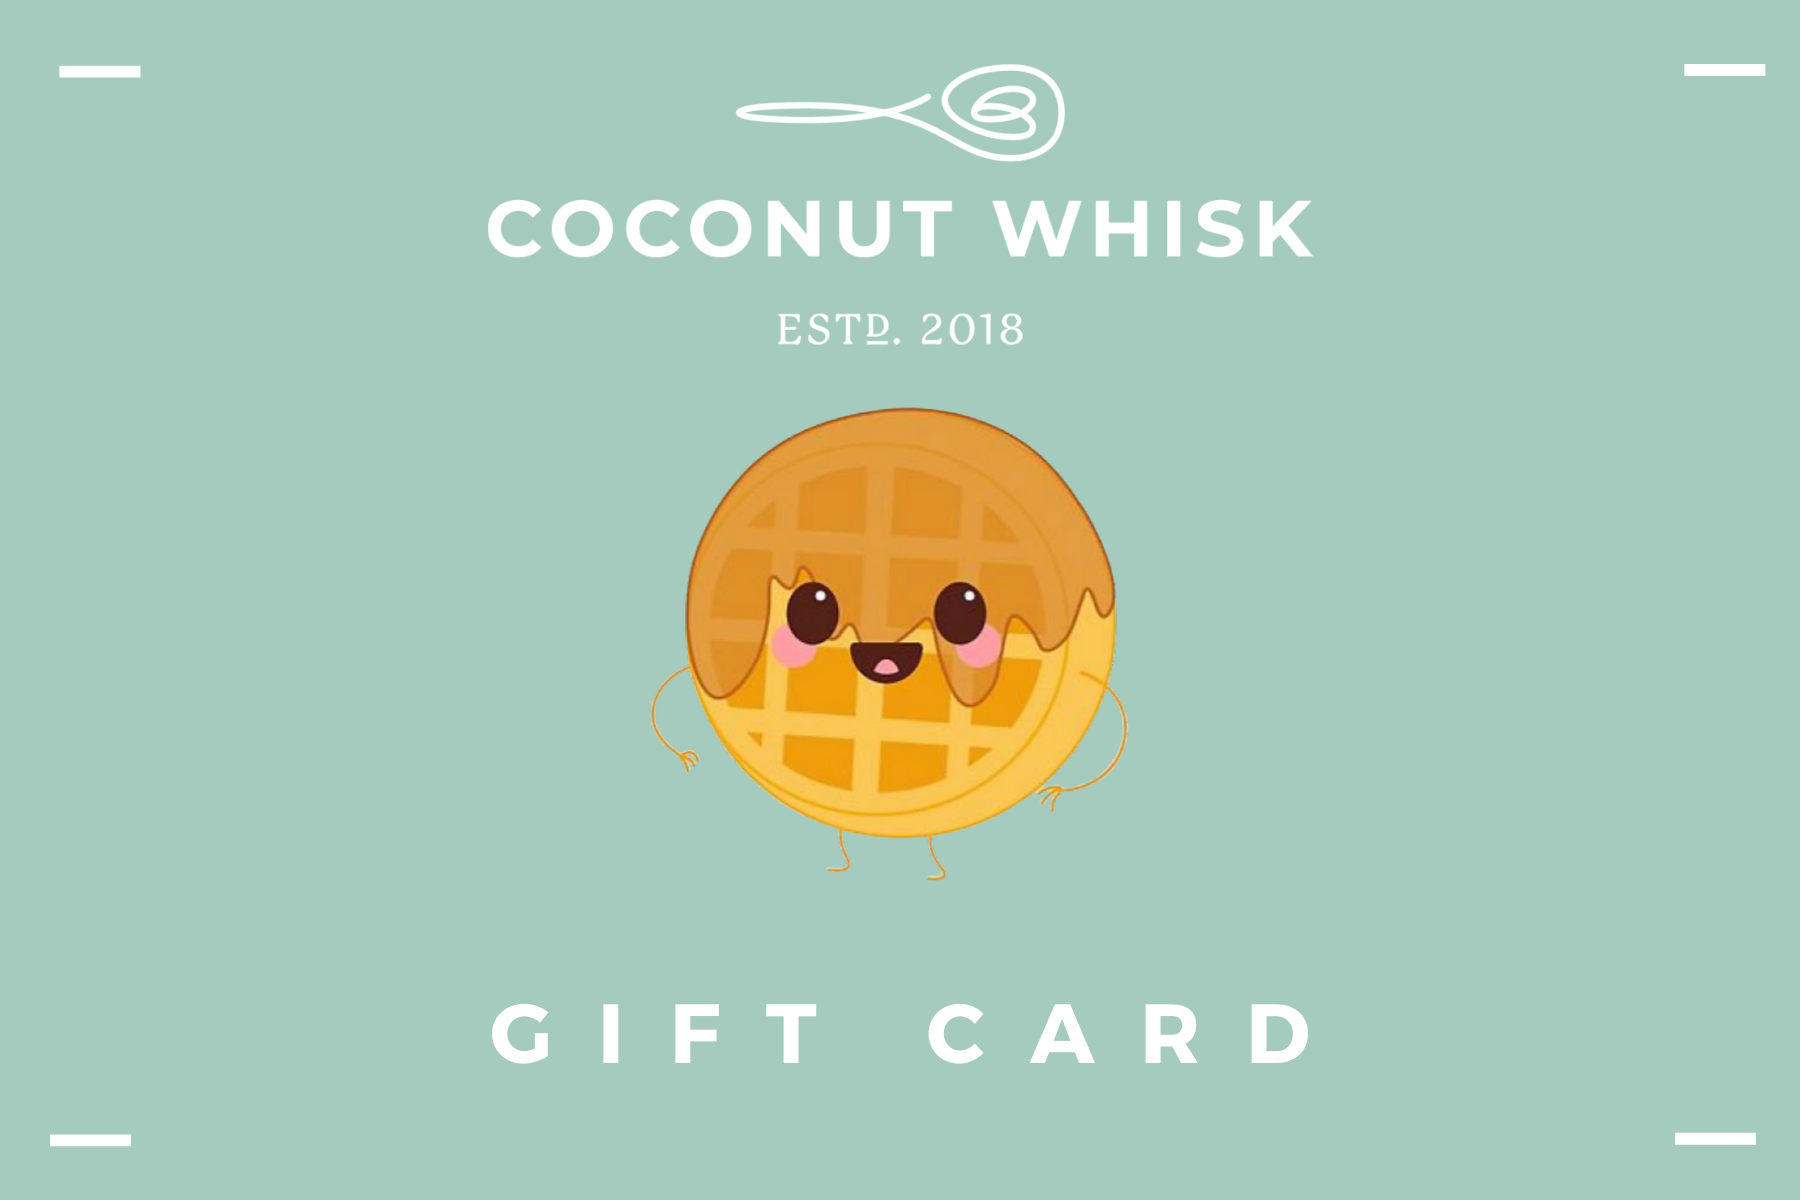 COCONUT WHISK GIFT CARDS